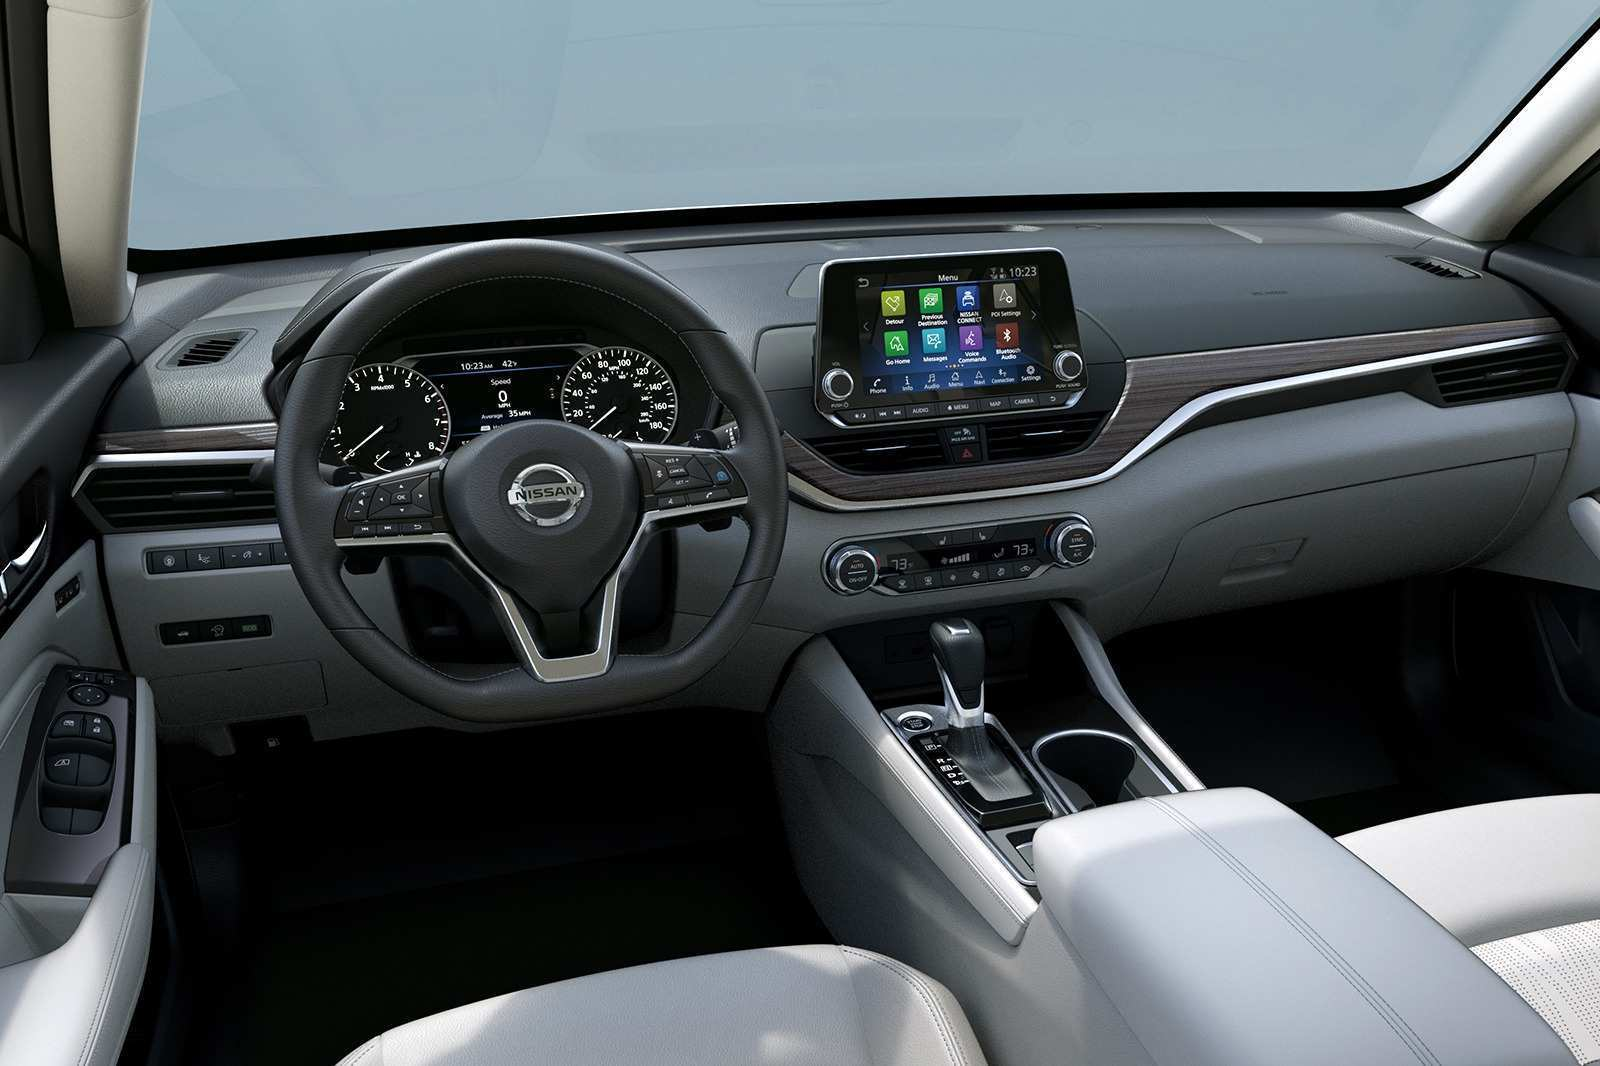 68 New Nissan Altima 2019 Horsepower Reviews with Nissan Altima 2019 Horsepower